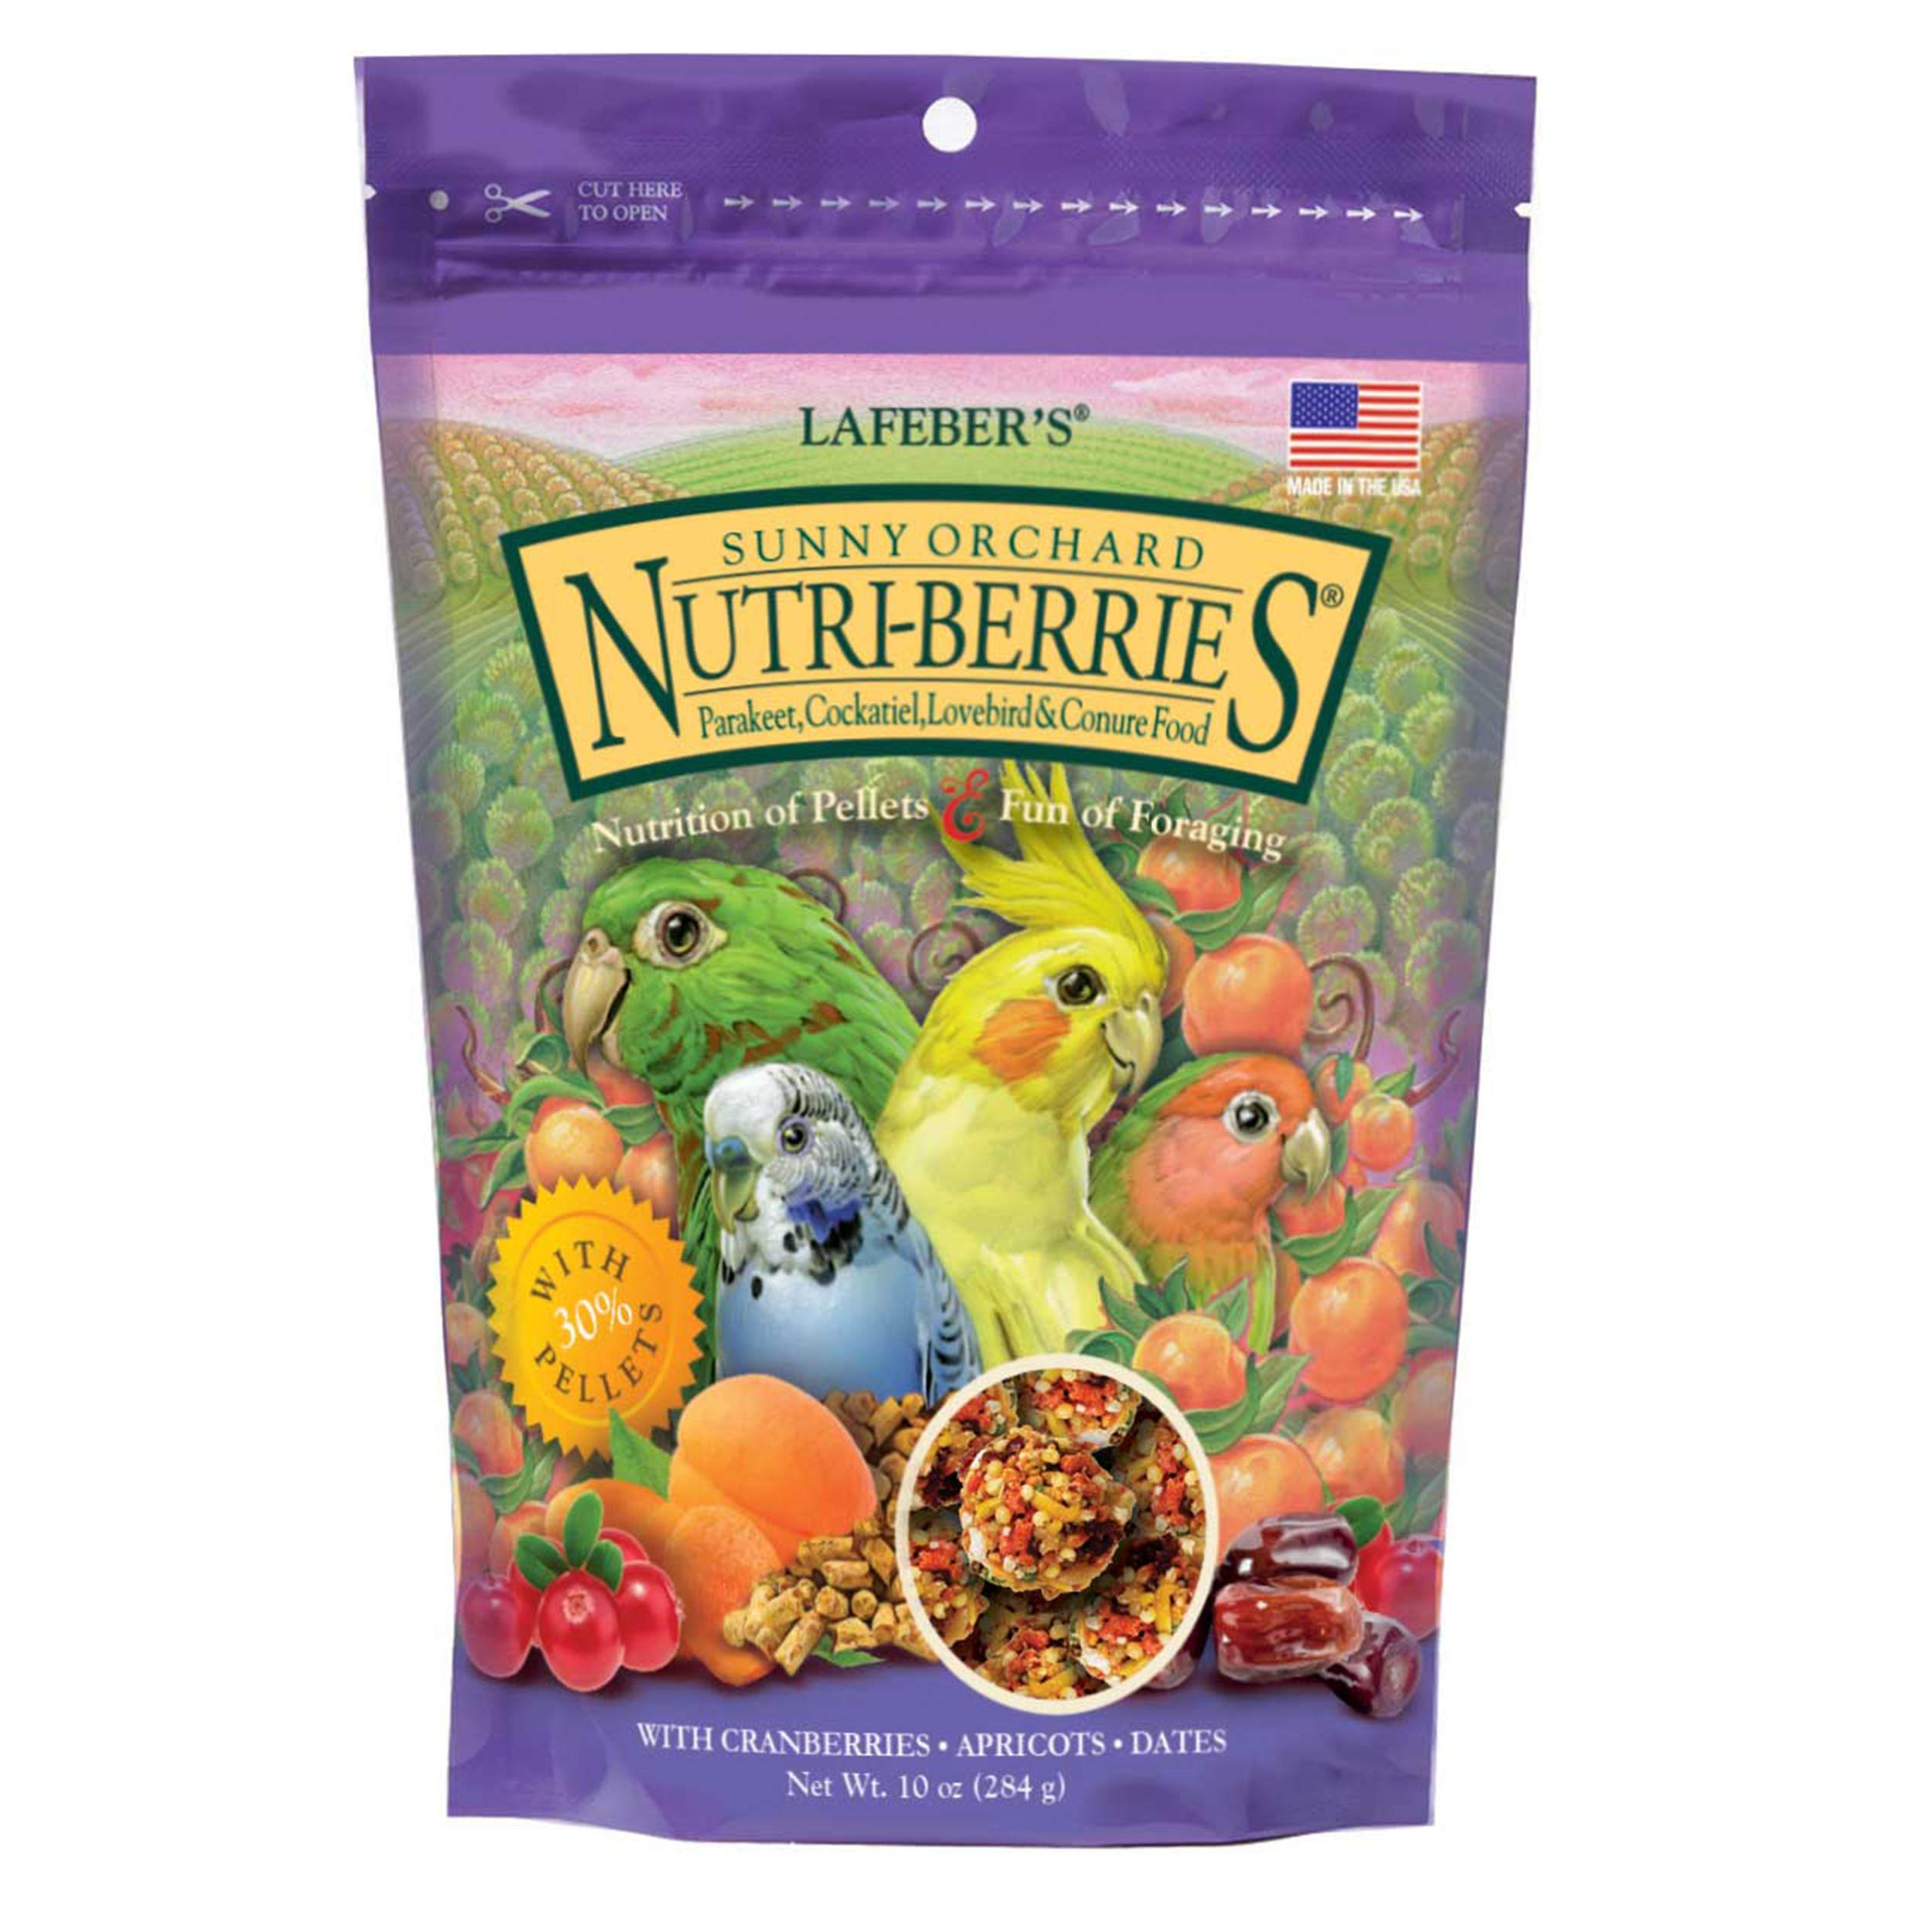 LAFEBER'S Sunny Orchard Nutri-Berries Pet Bird Food, Made with Non-GMO and Human-Grade Ingredients